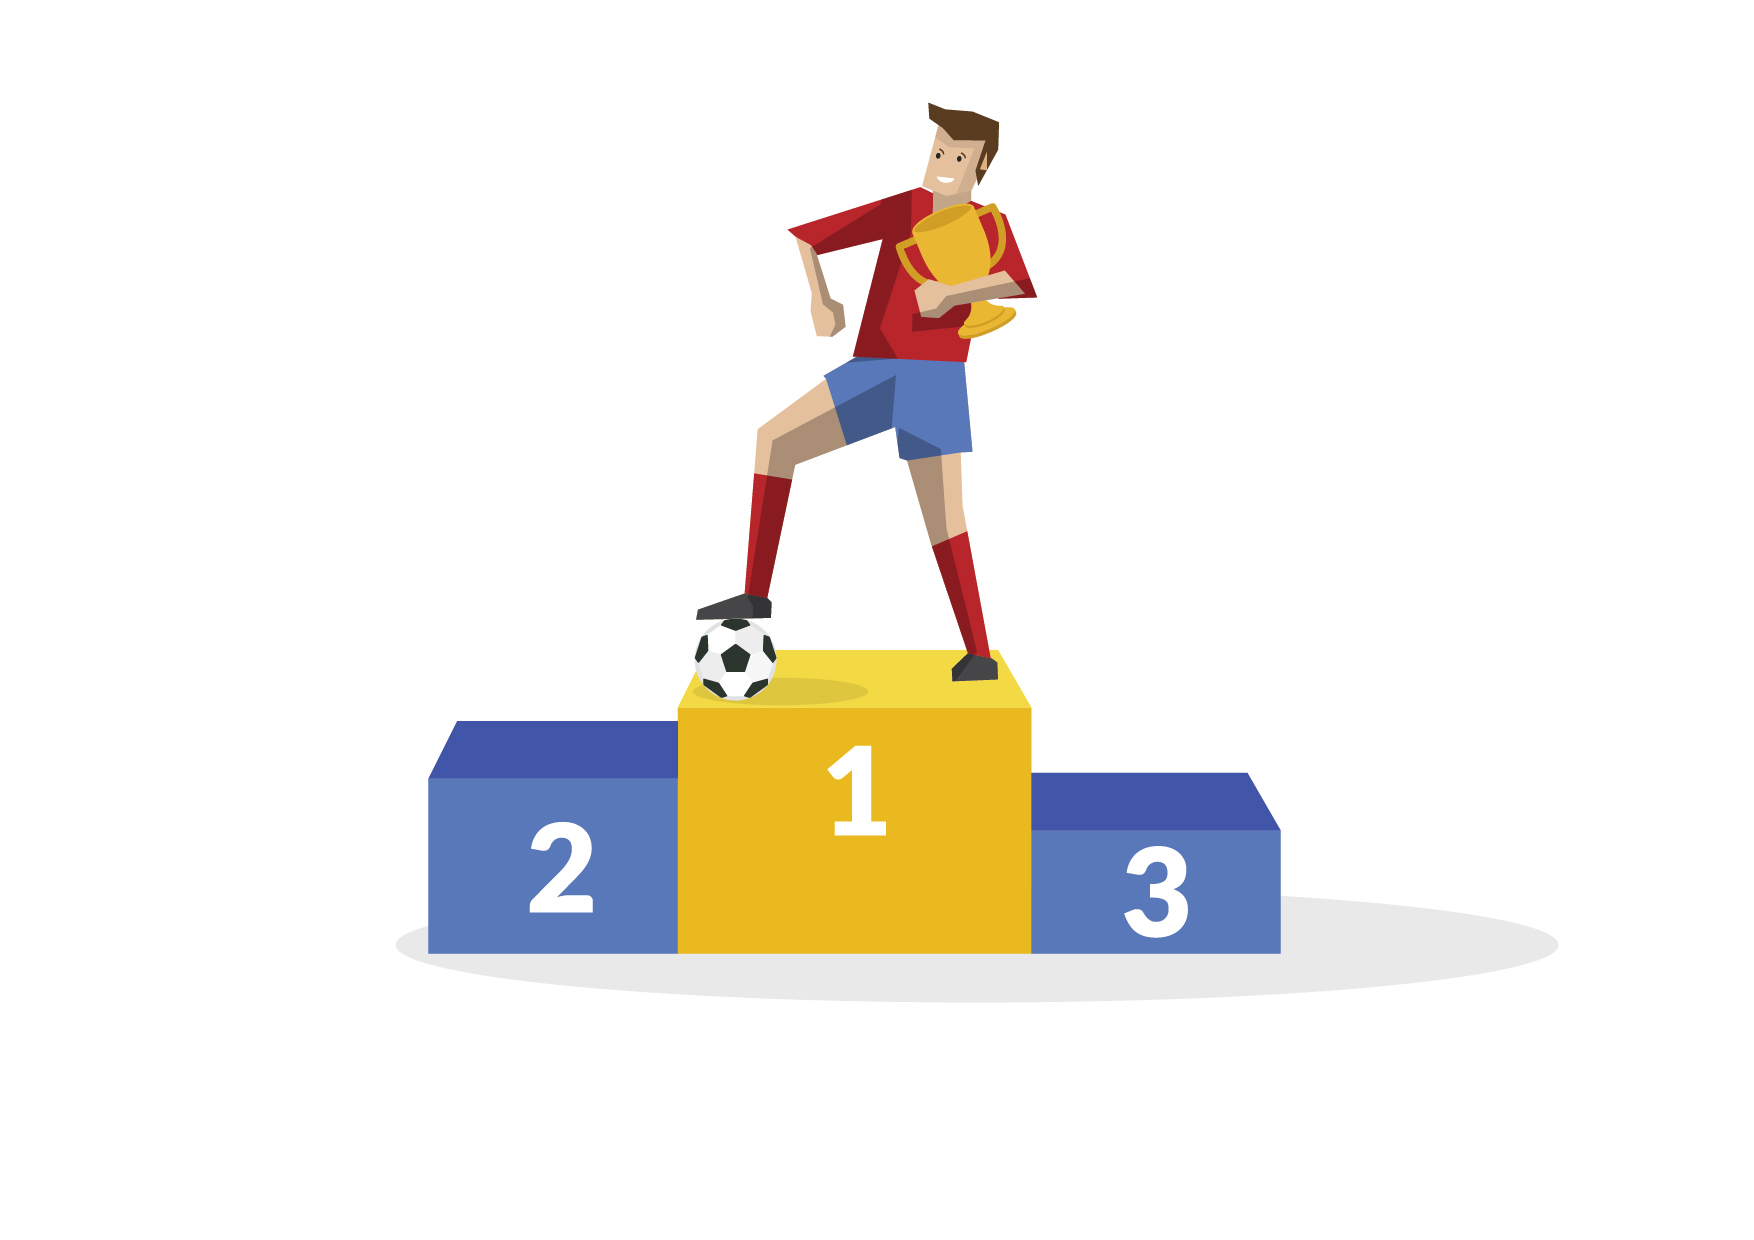 HBR Illustration of a soccer player holding a trophy standing in first place